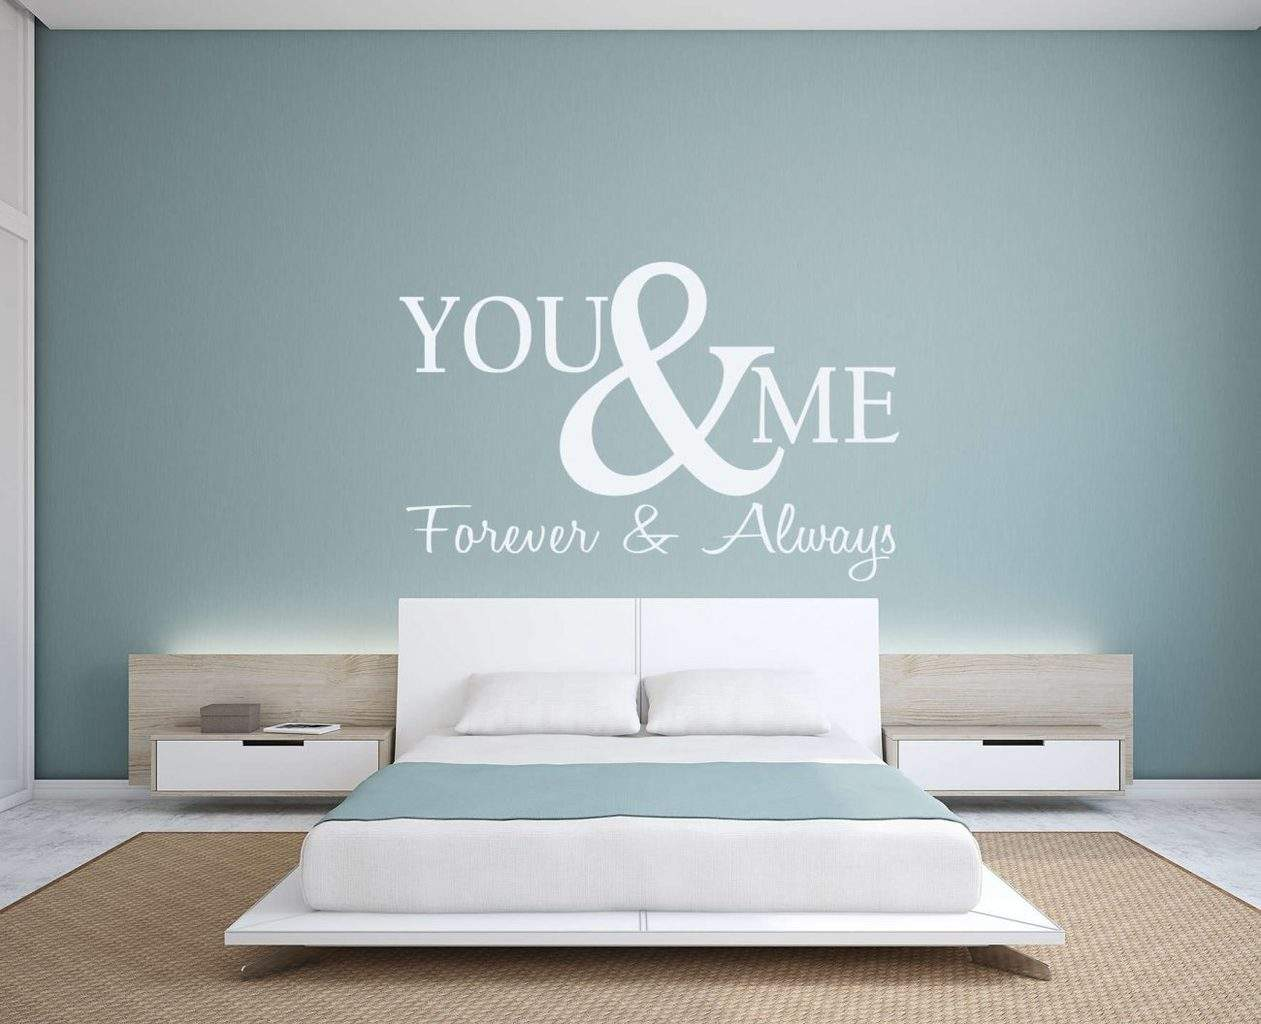 You & Me forever and always wall decal sticker